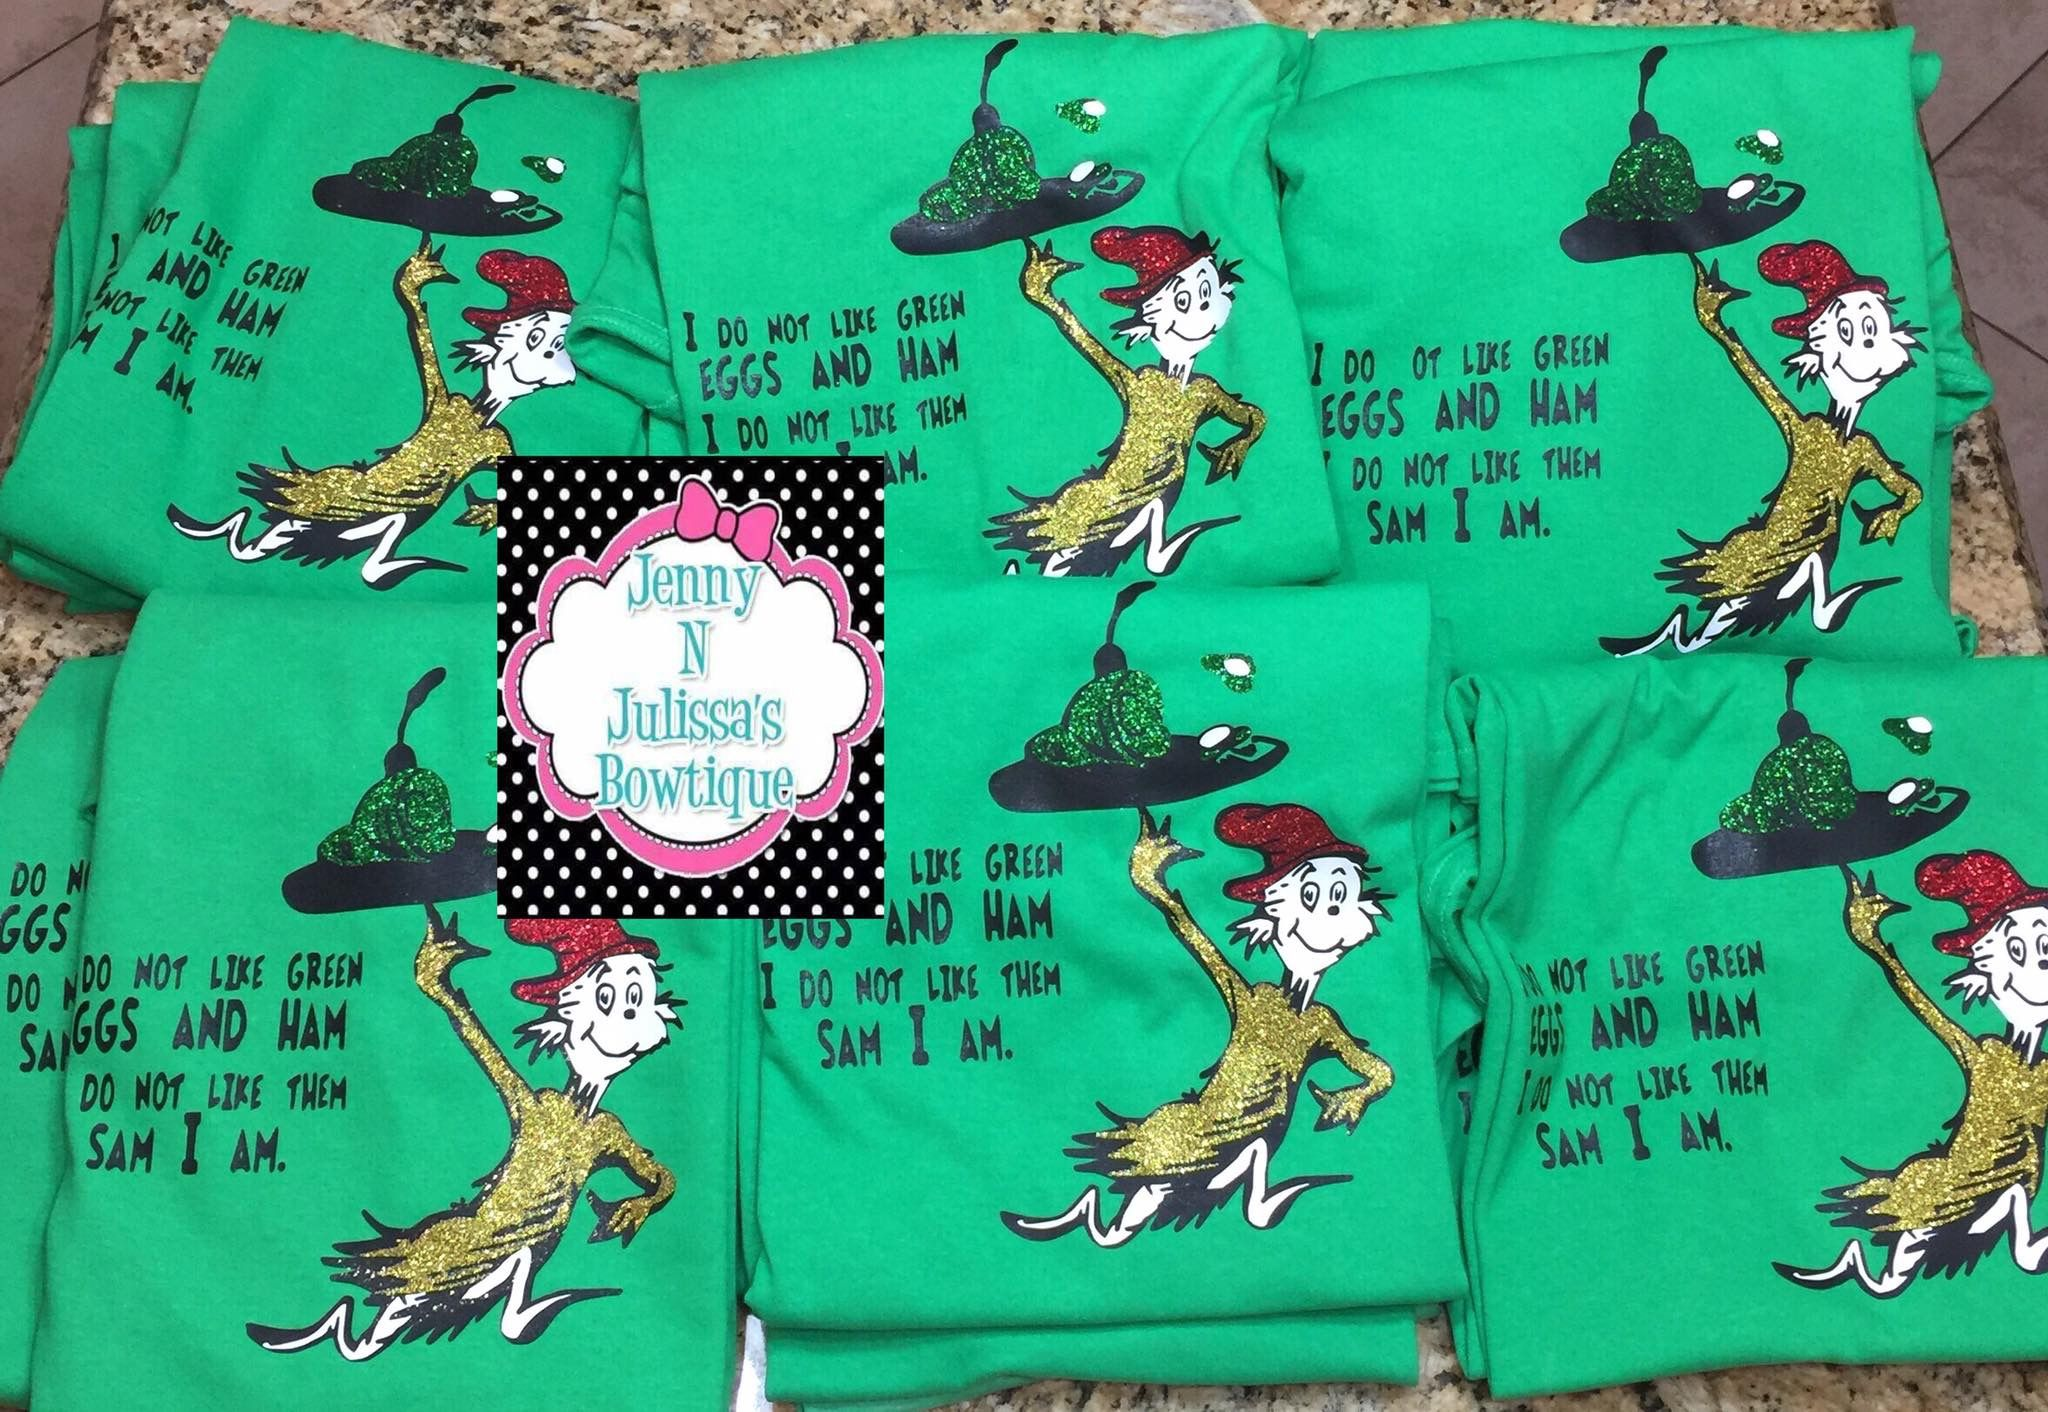 Green Eggs And Ham Shirts Dr Seuss Outfits Green Eggs